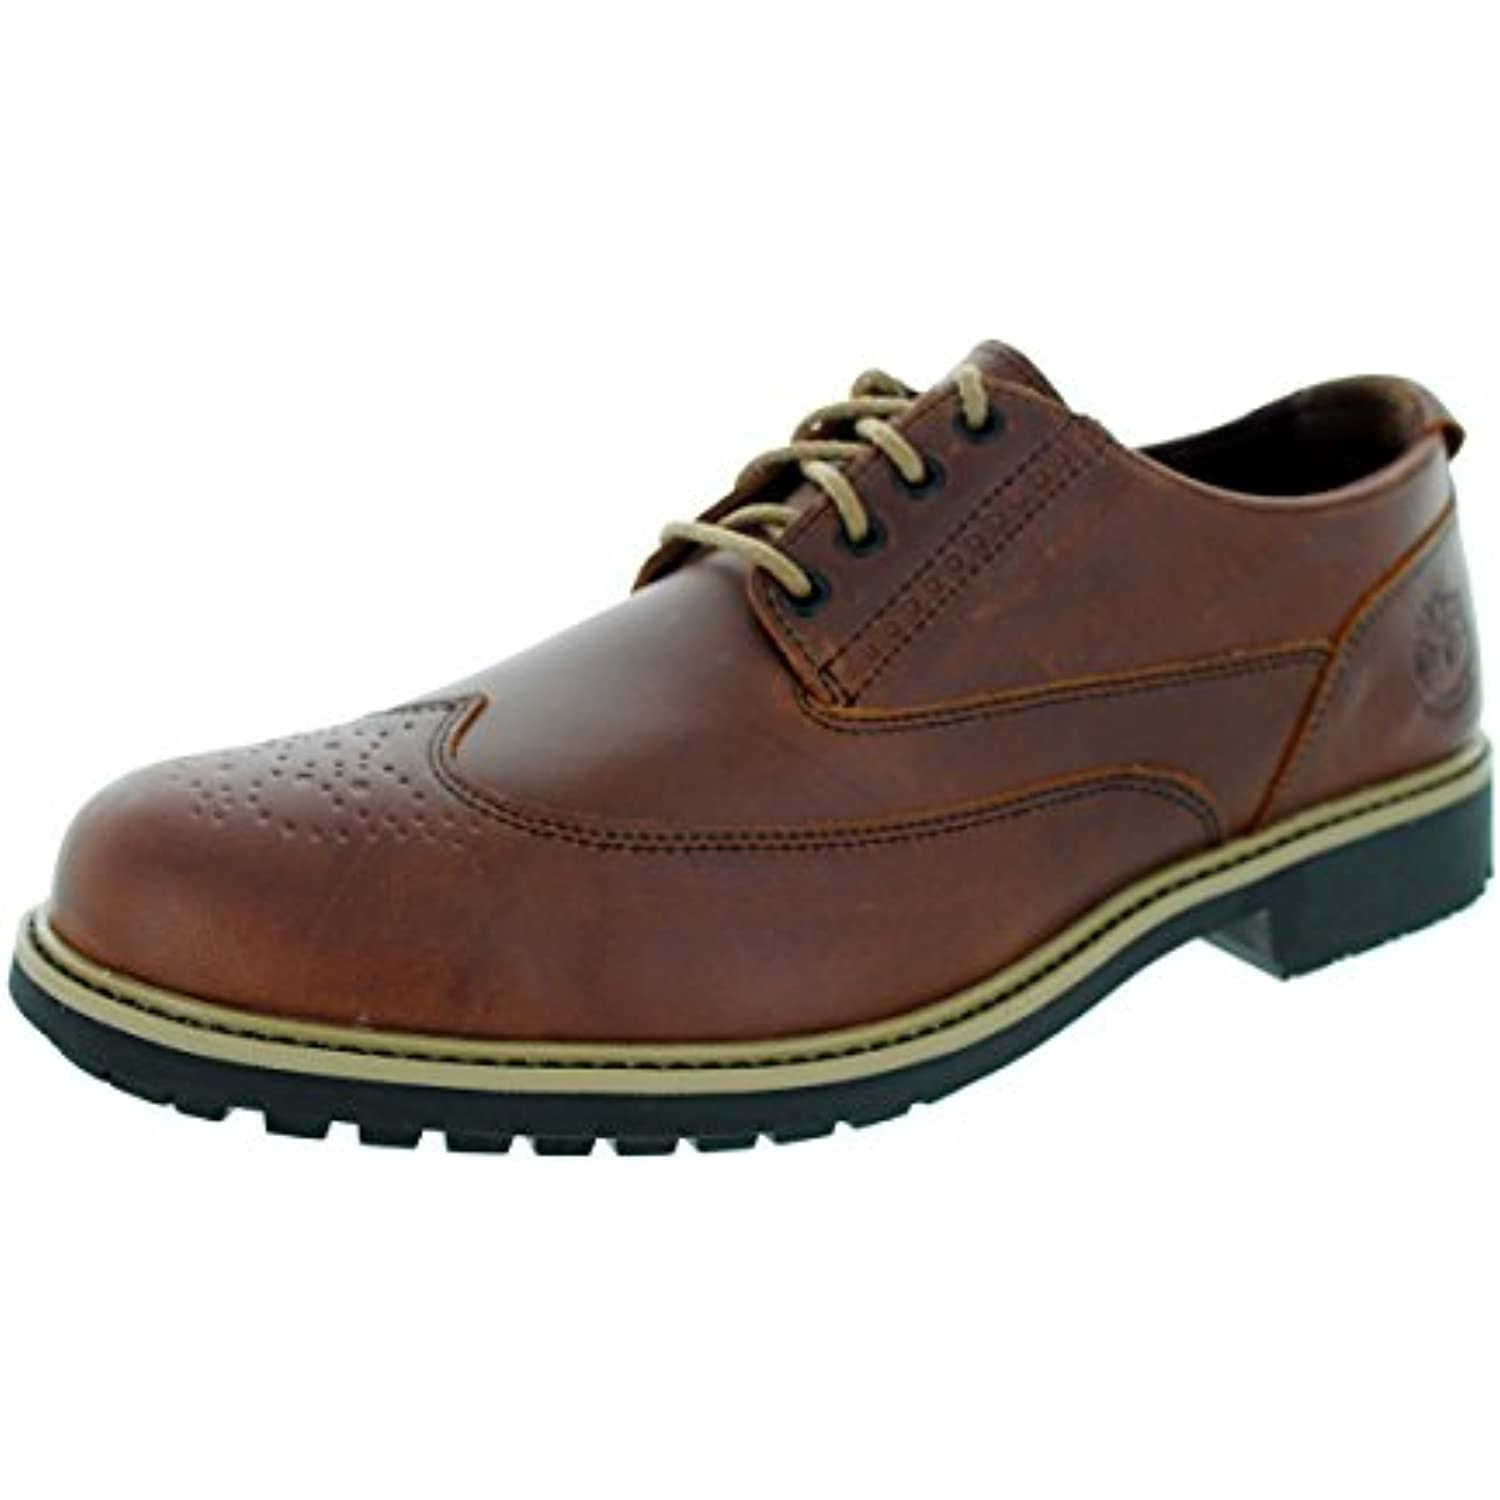 Timberland Earthkeepers Stormbuck Brogue Oxford, Homme - - - B00LMCNW9G - 2f383c